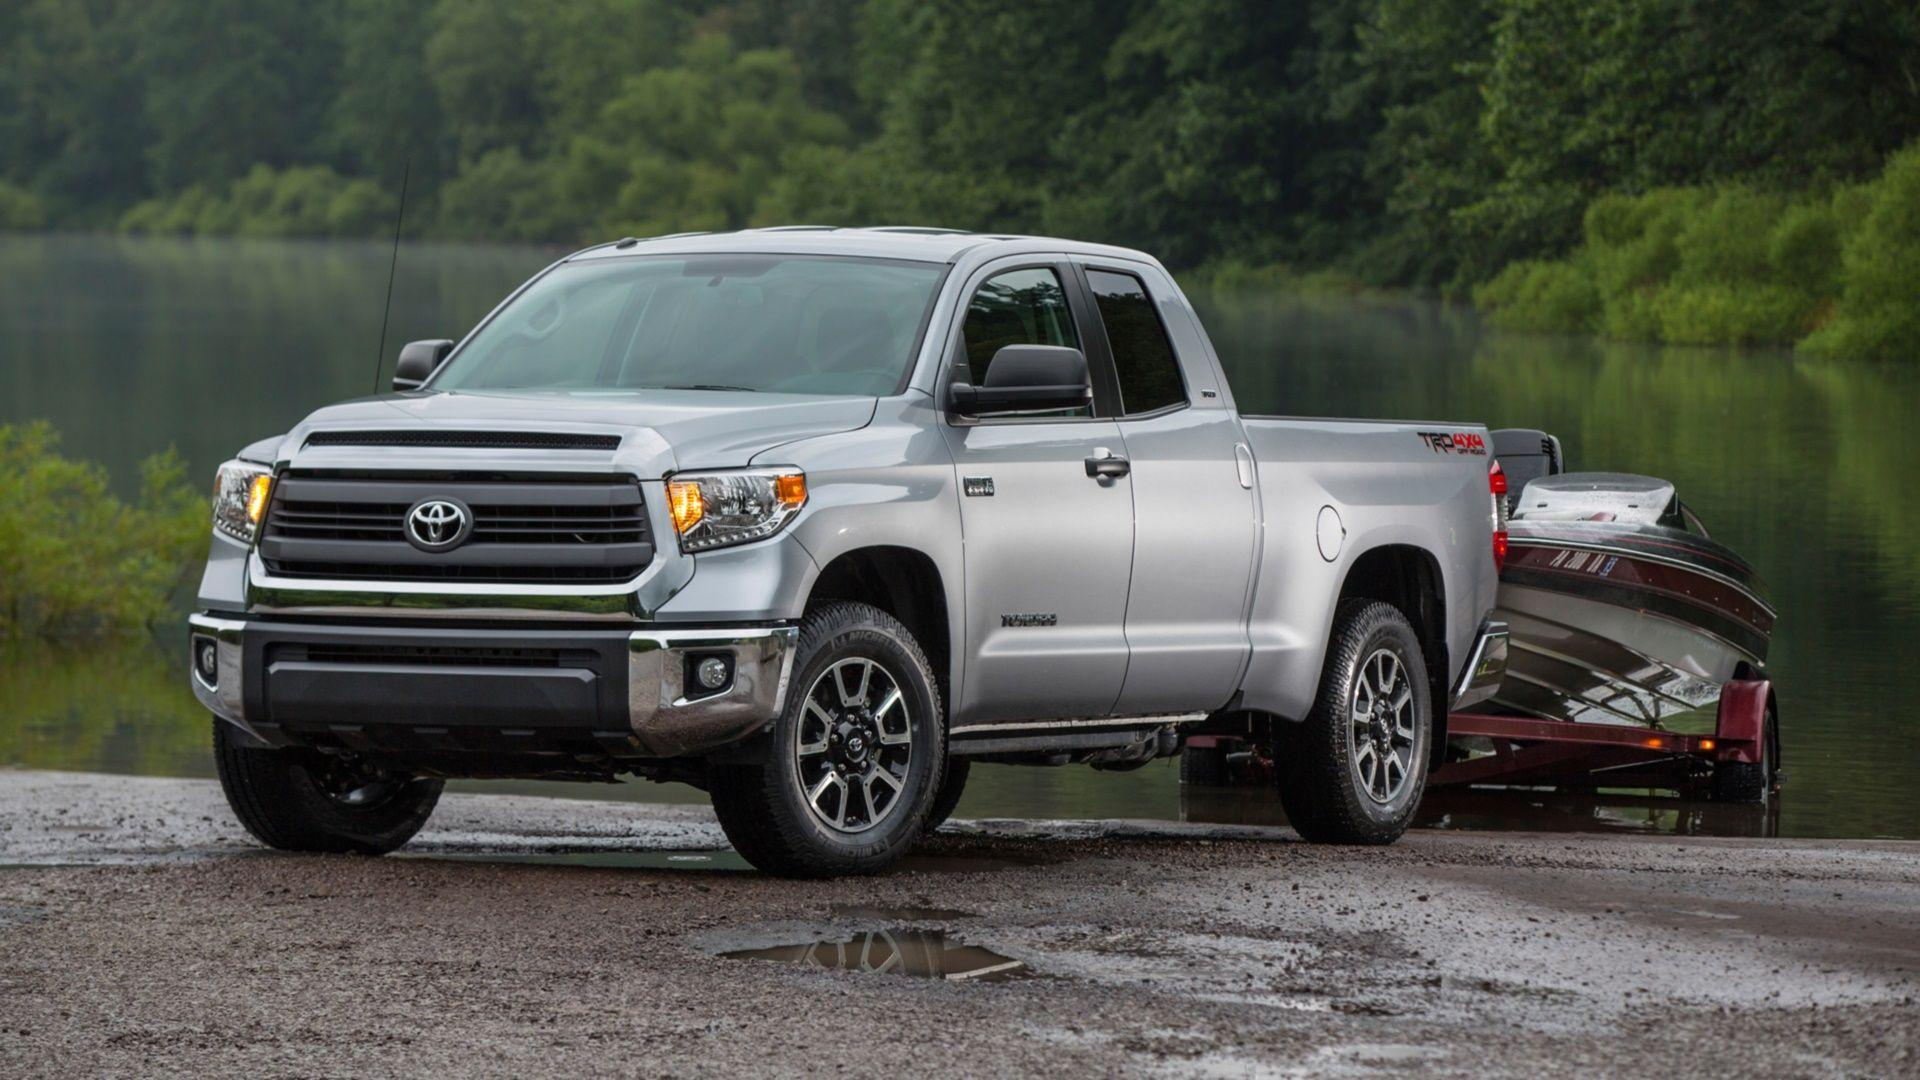 Toyota Tundra Full HD Wallpapers and Backgrounds Image